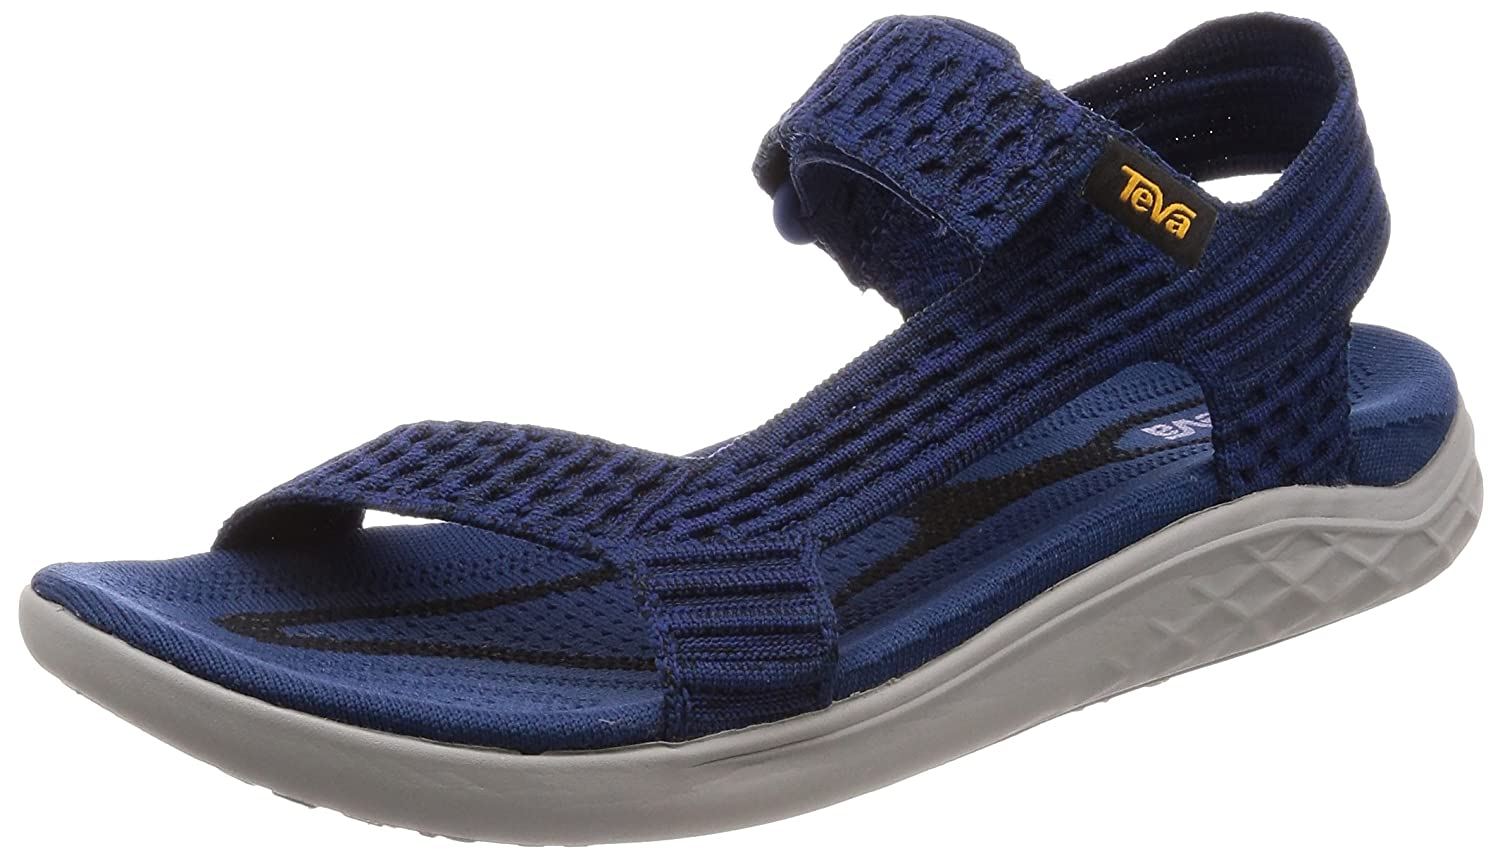 Teva - Men's Terra-Float 2 Knit Universal - Black - 7 B078HHSBFK 12 M US|Navy/Grey